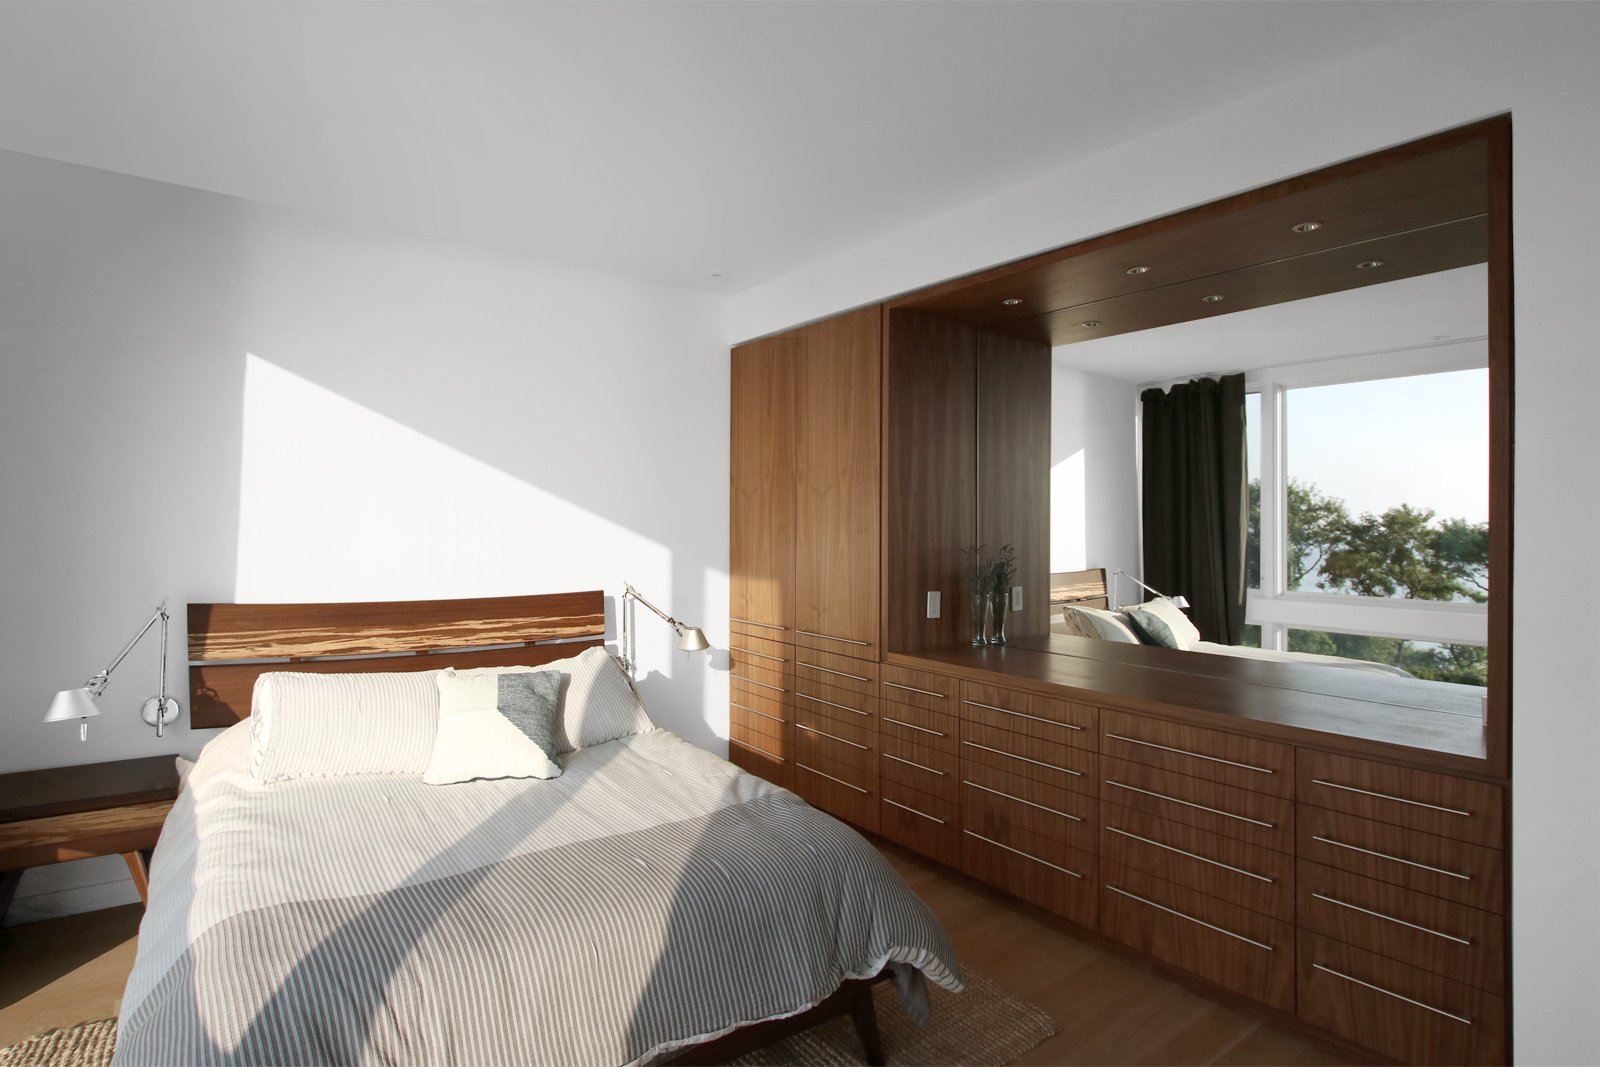 Bedroom, Light Hardwood Floor, Wardrobe, Ceiling Lighting, Bed, Dresser, and Night Stands Bedroom at rear of home with view to Long Island Sound  North Fork Bluff House by Resolution: 4 Architecture